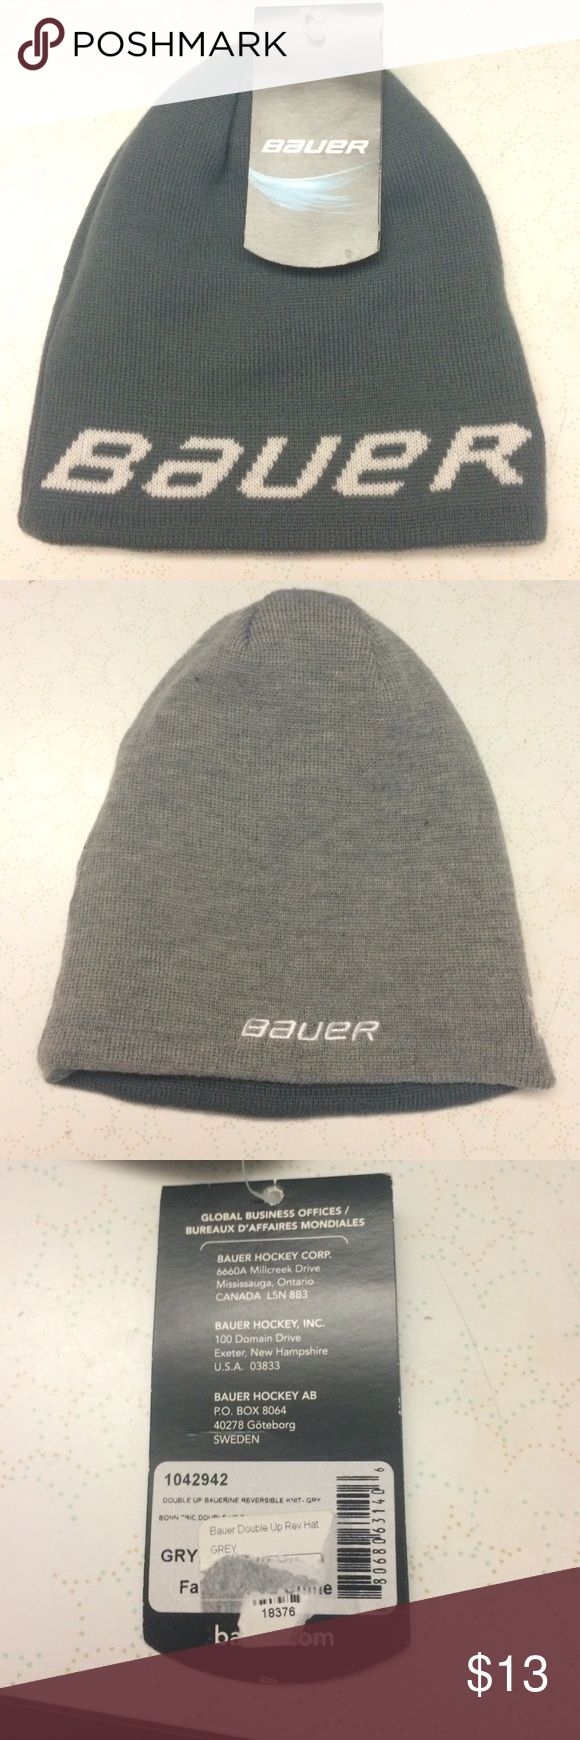 BRAND NWT Bauer Hockey Reversible Winter Beanie Brand new, tags on, name brand Bauer Double Up Rev hockey hat! Reversible winter beanie! Never worn!! Bauer Accessories Hats